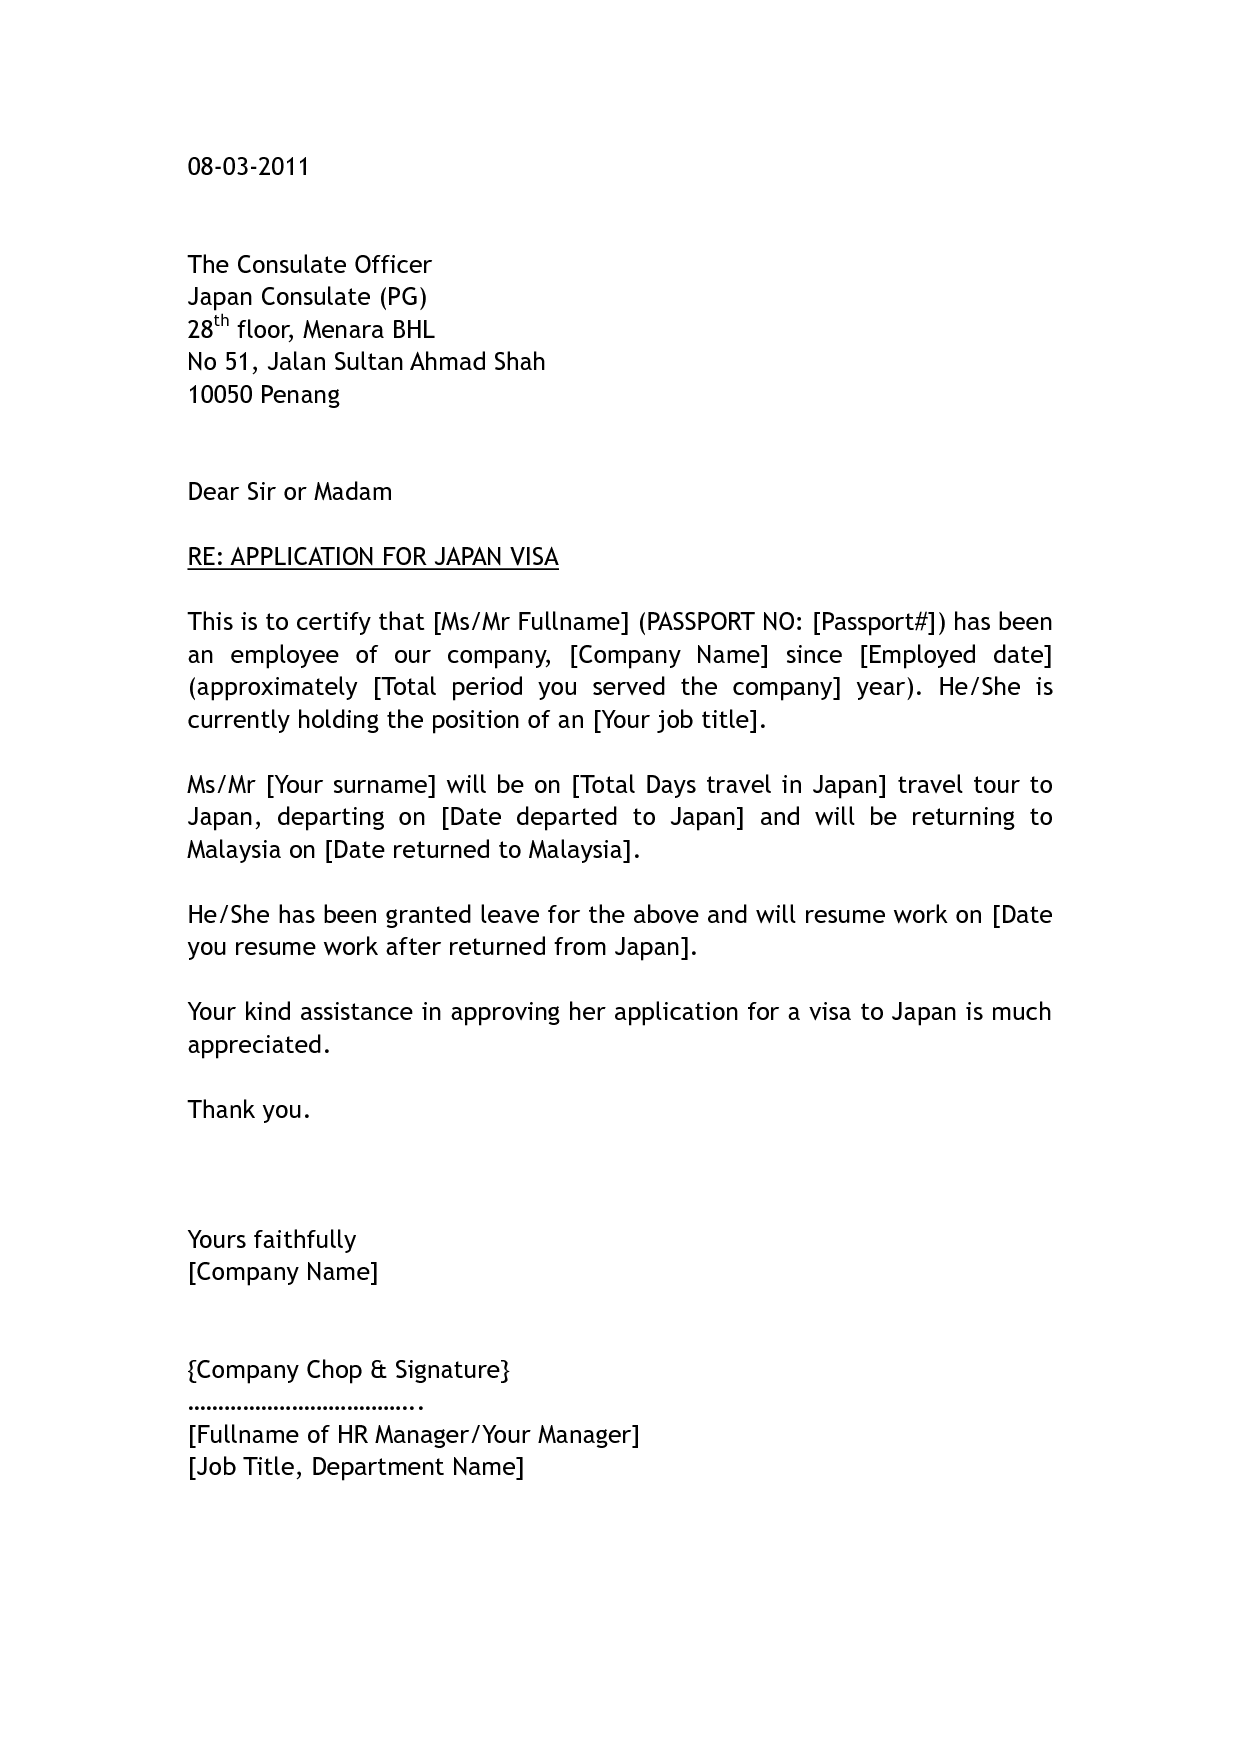 covering letter for business visa application